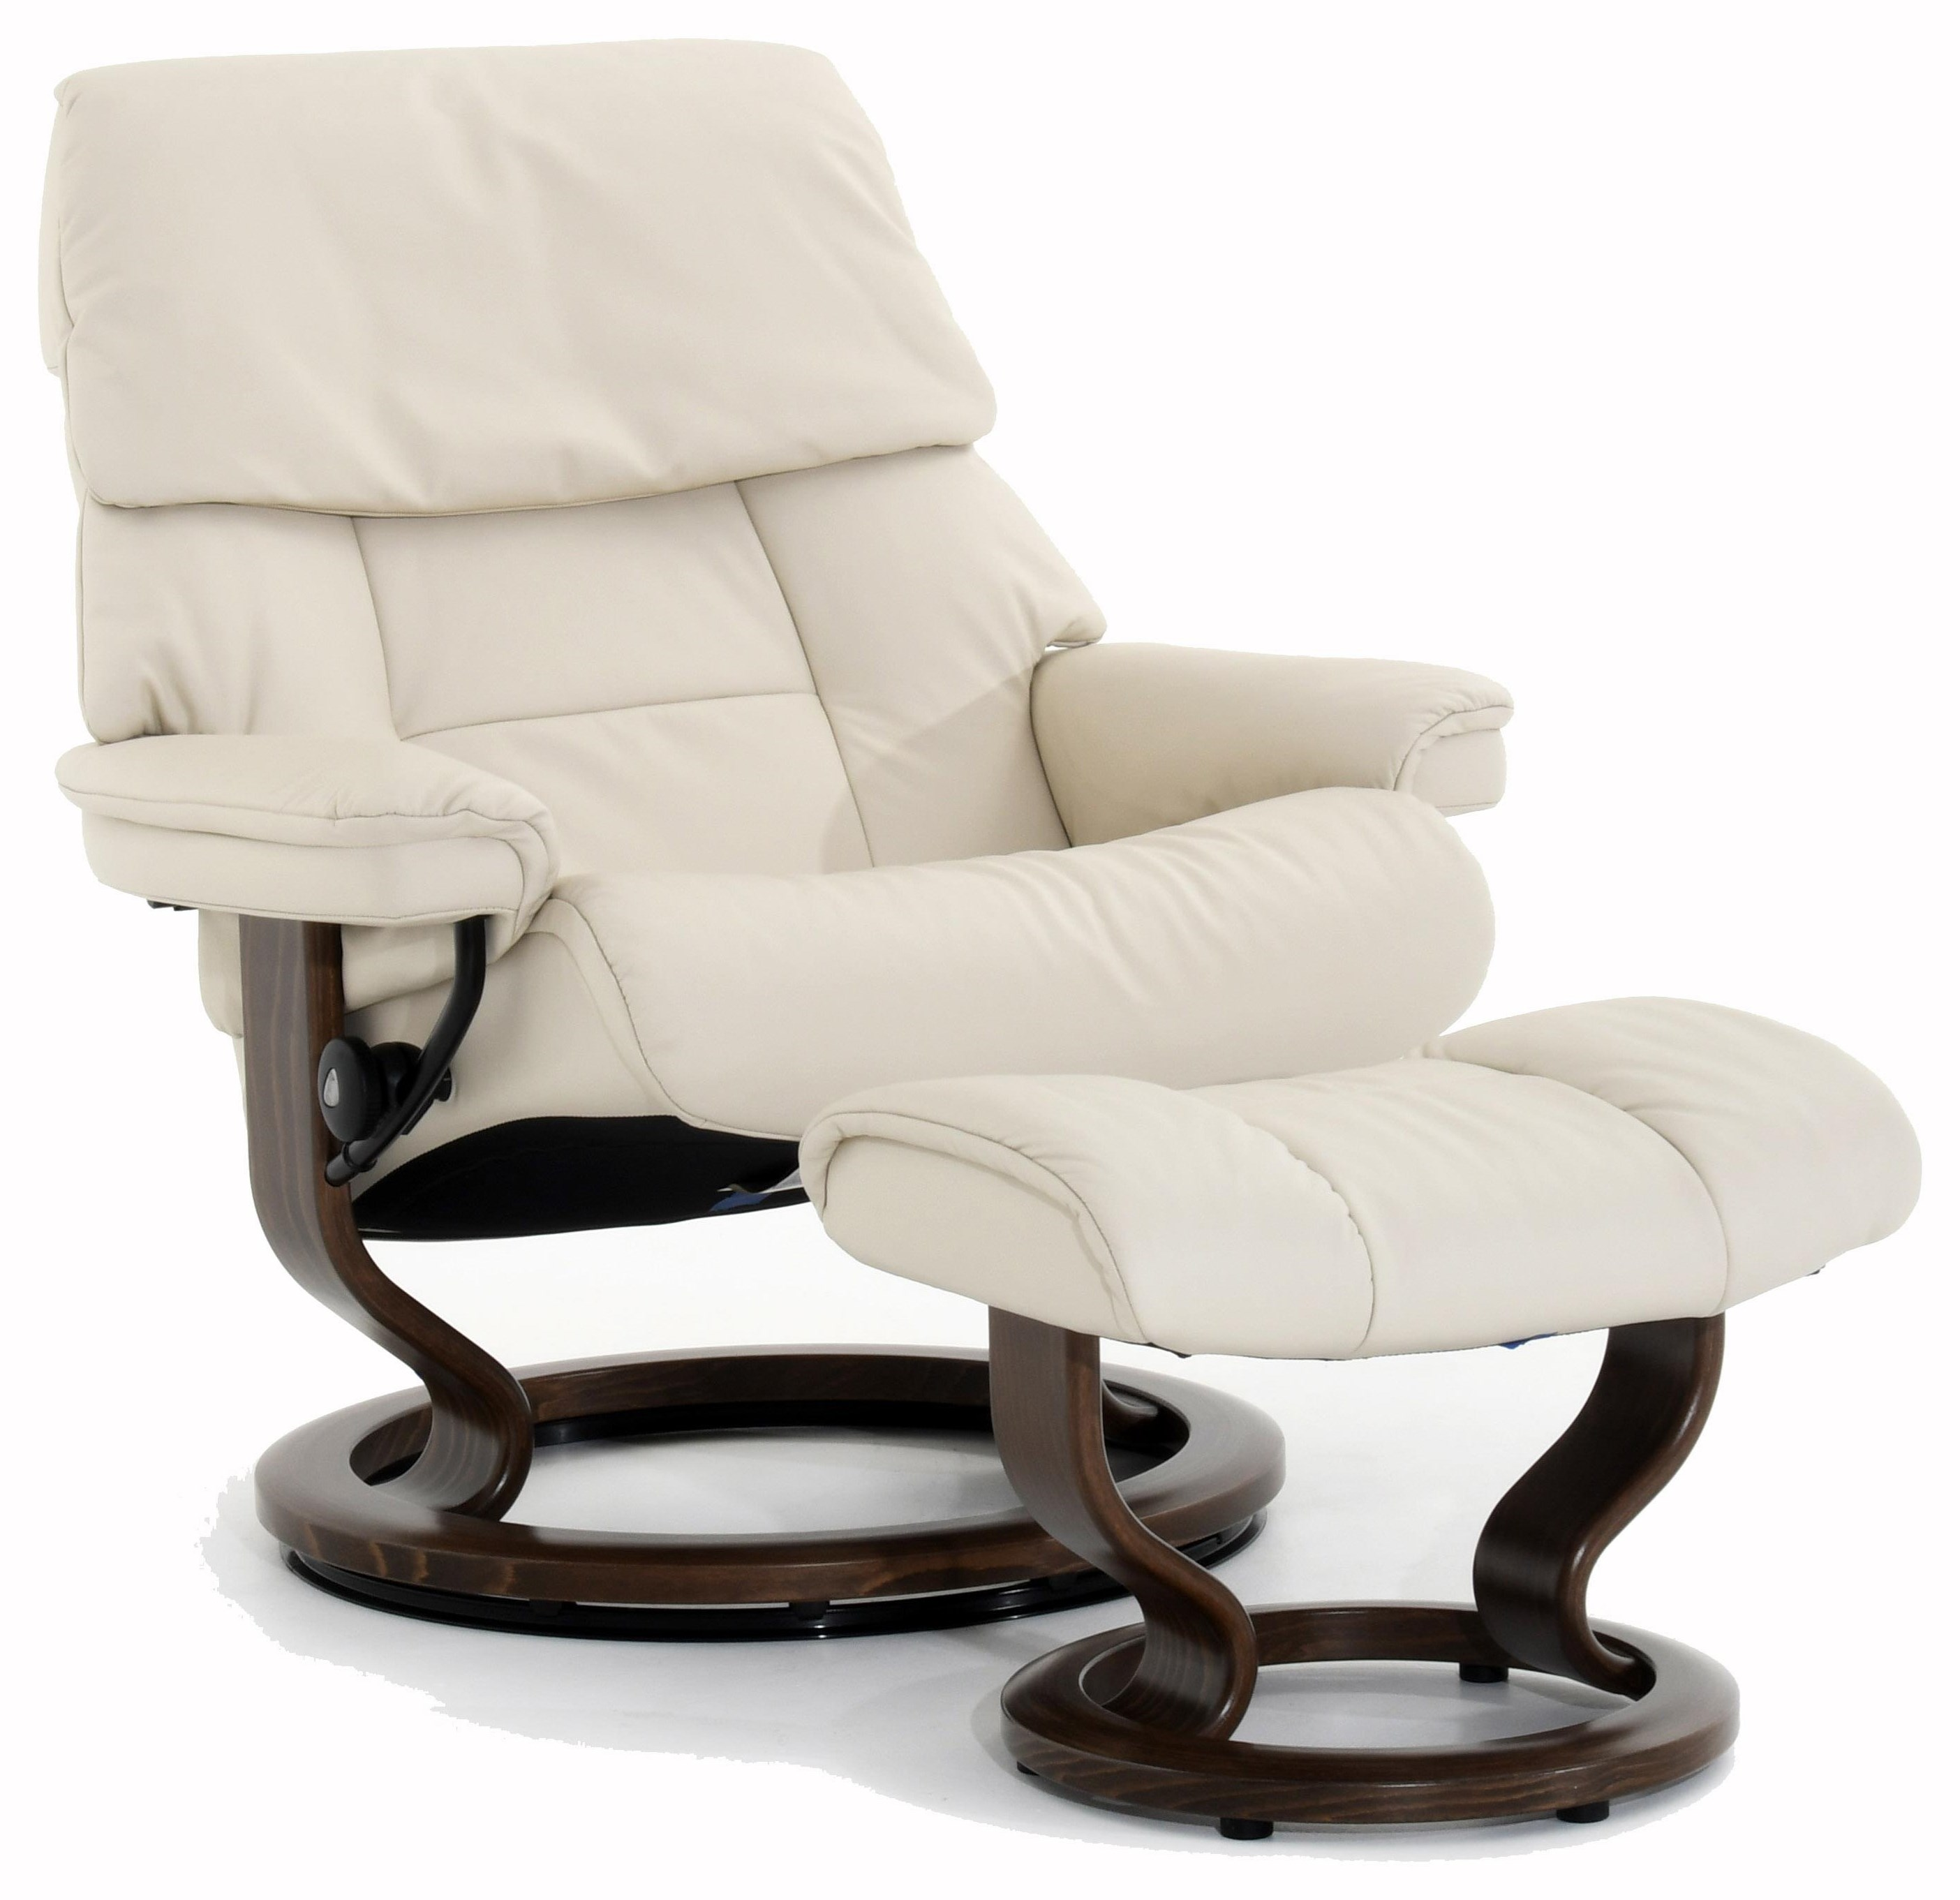 Stressless Ruby Large Classic Chair by Stressless at Baer's Furniture